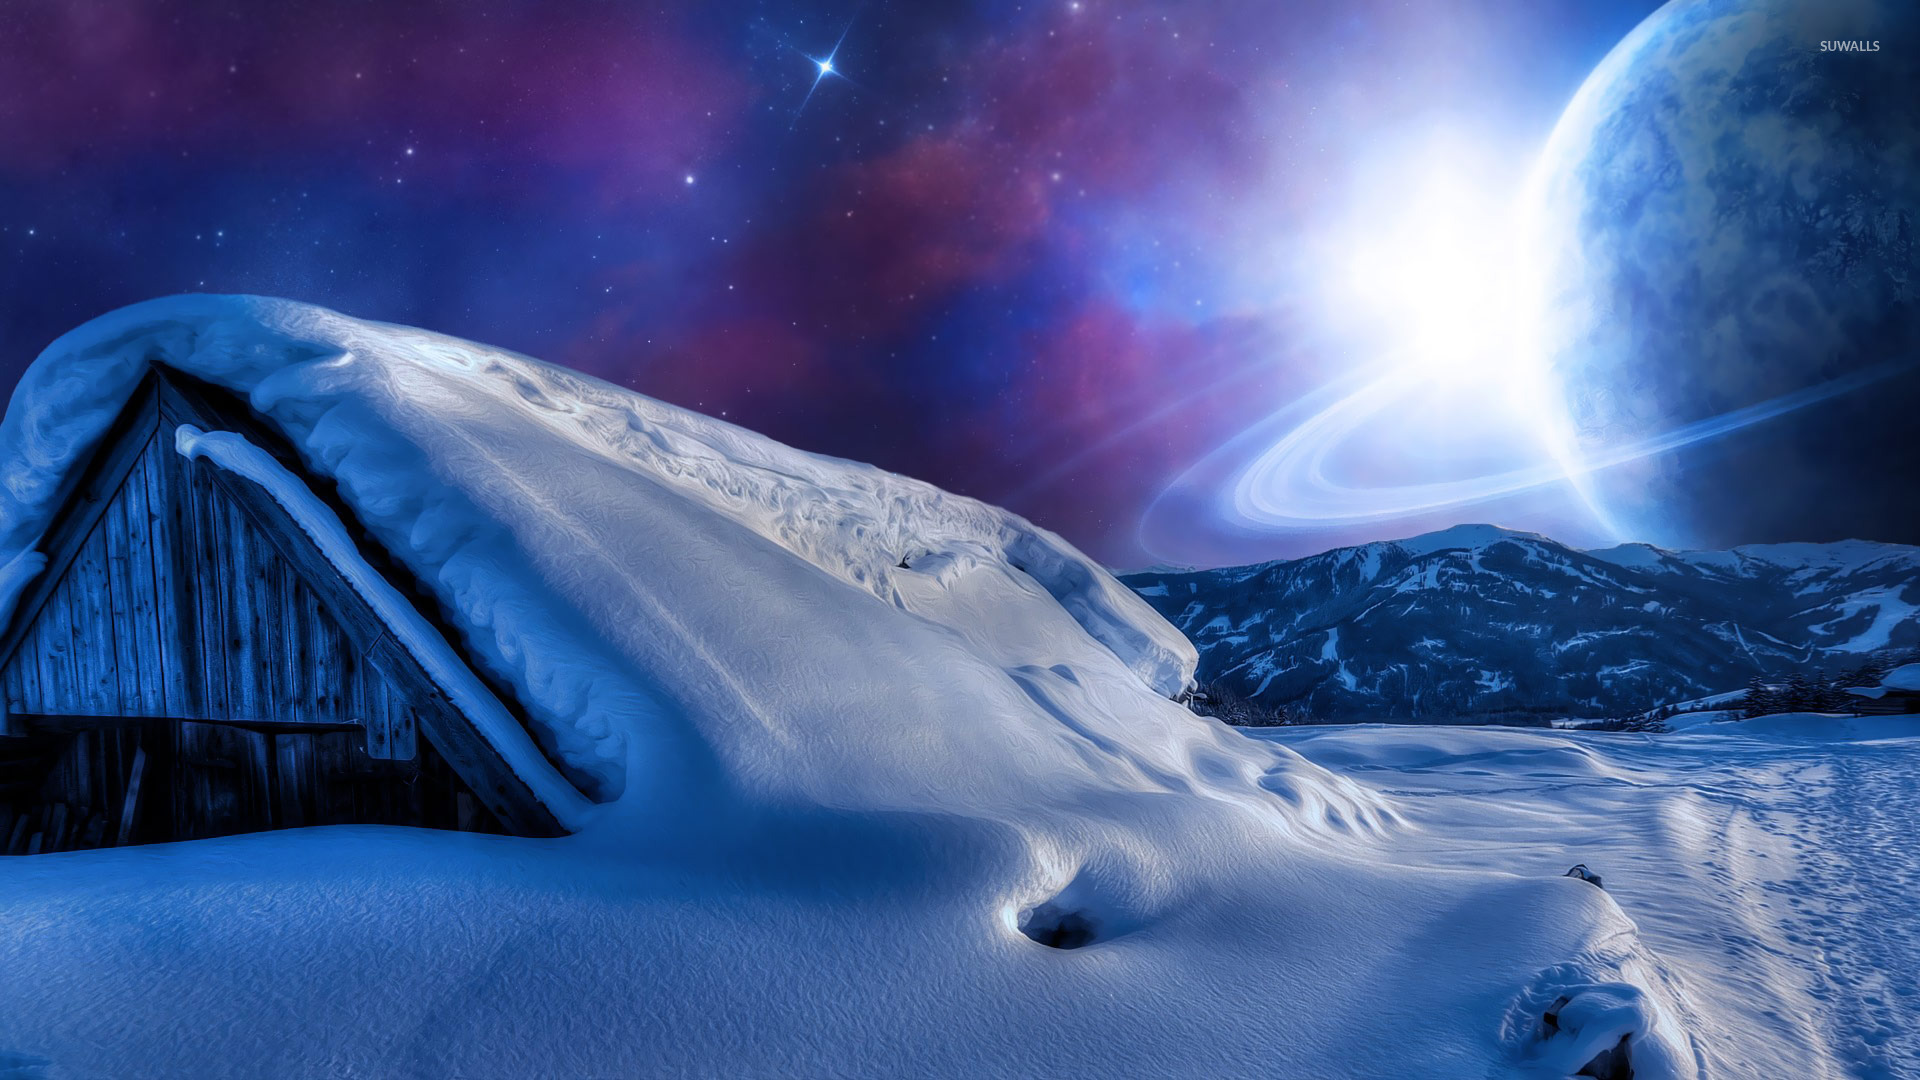 Planet In The Sky During A Winter Night Wallpaper Fantasy